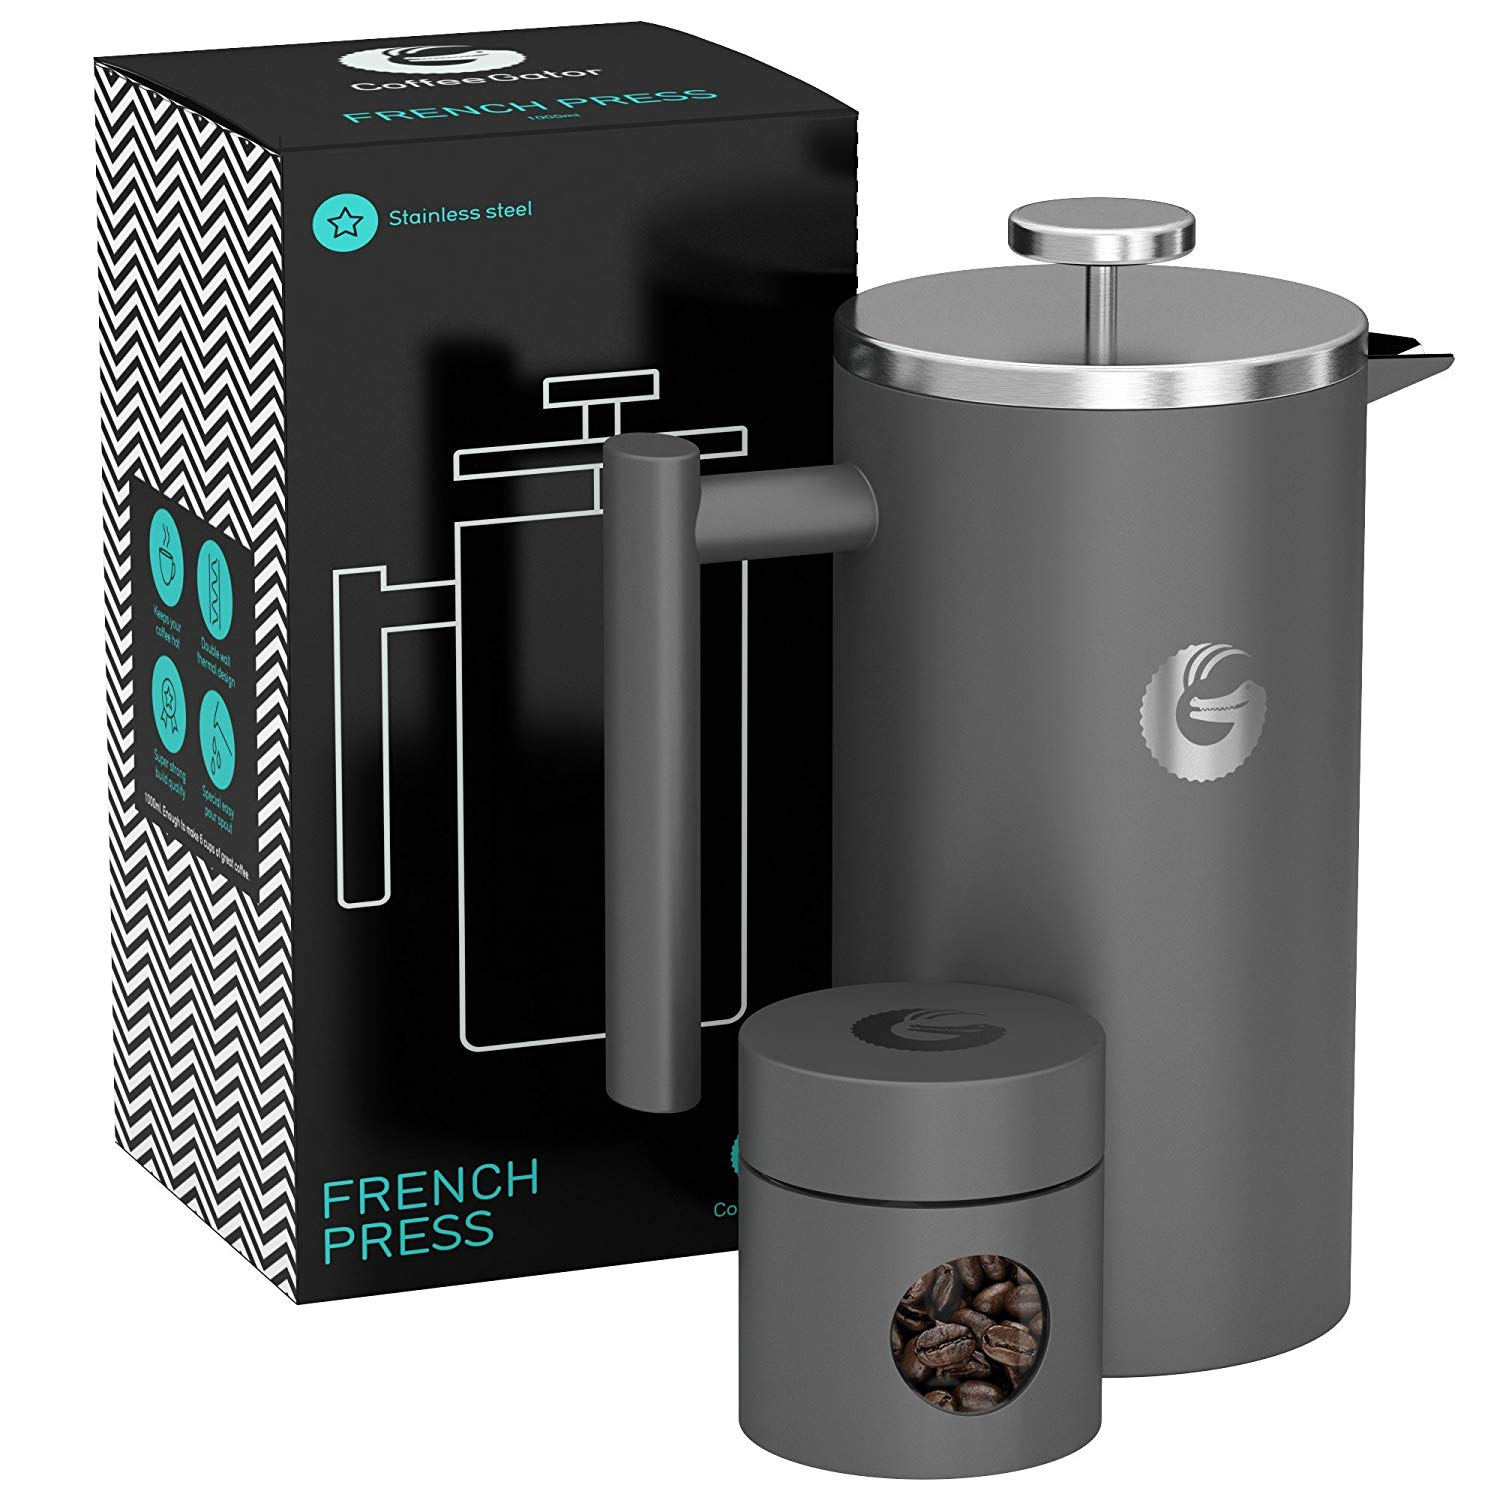 One Year Anniversary Gifts for Girlfriend Large French Press Coffee Maker